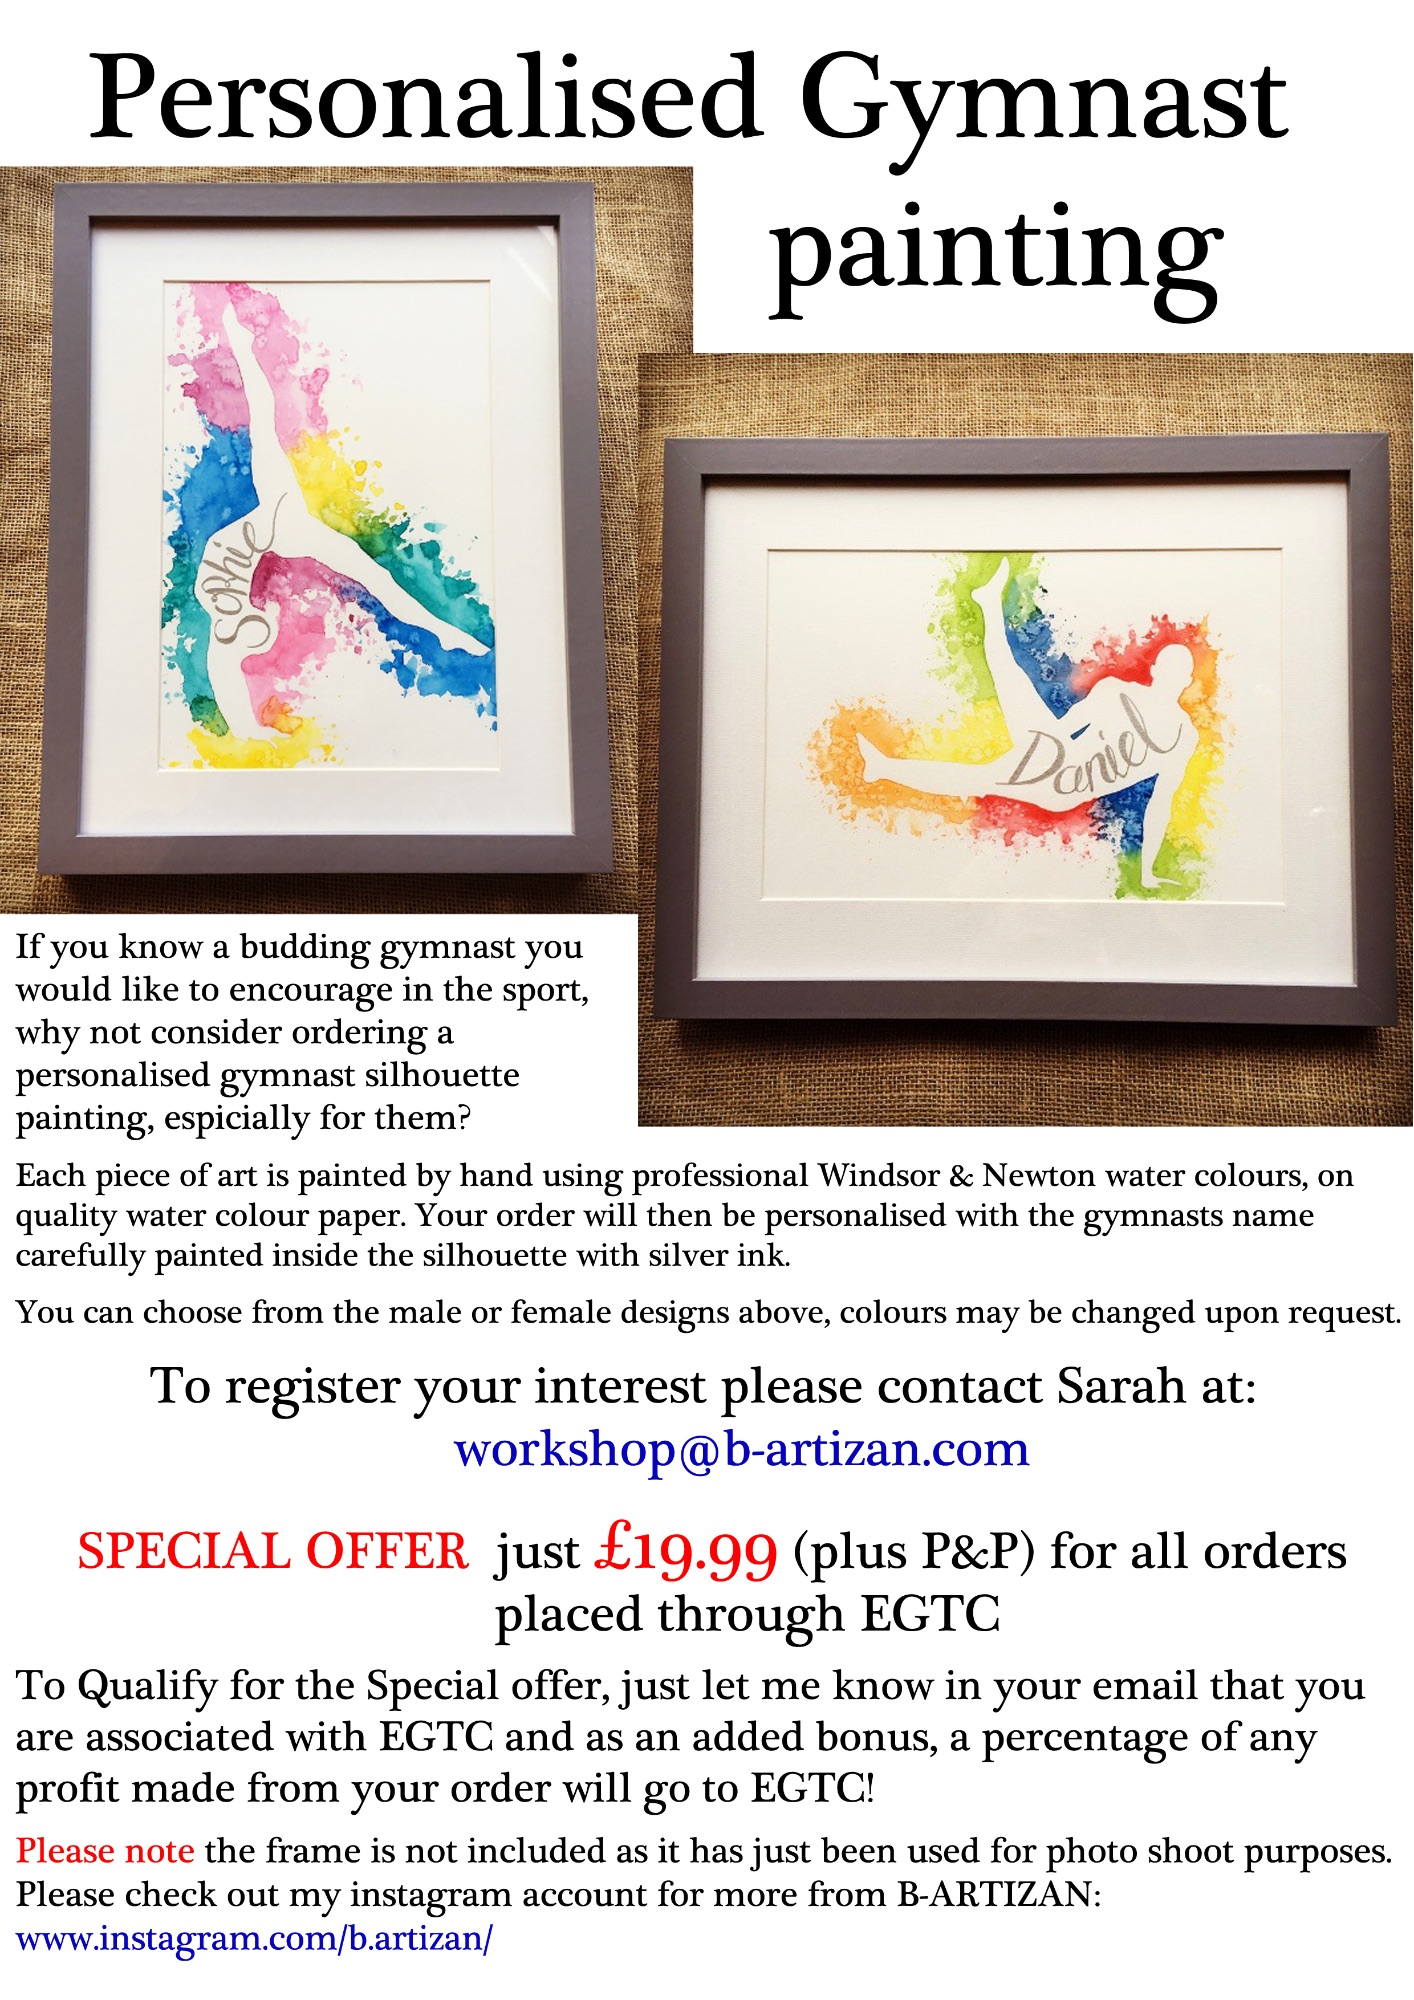 Personalised Gymnast painting poster